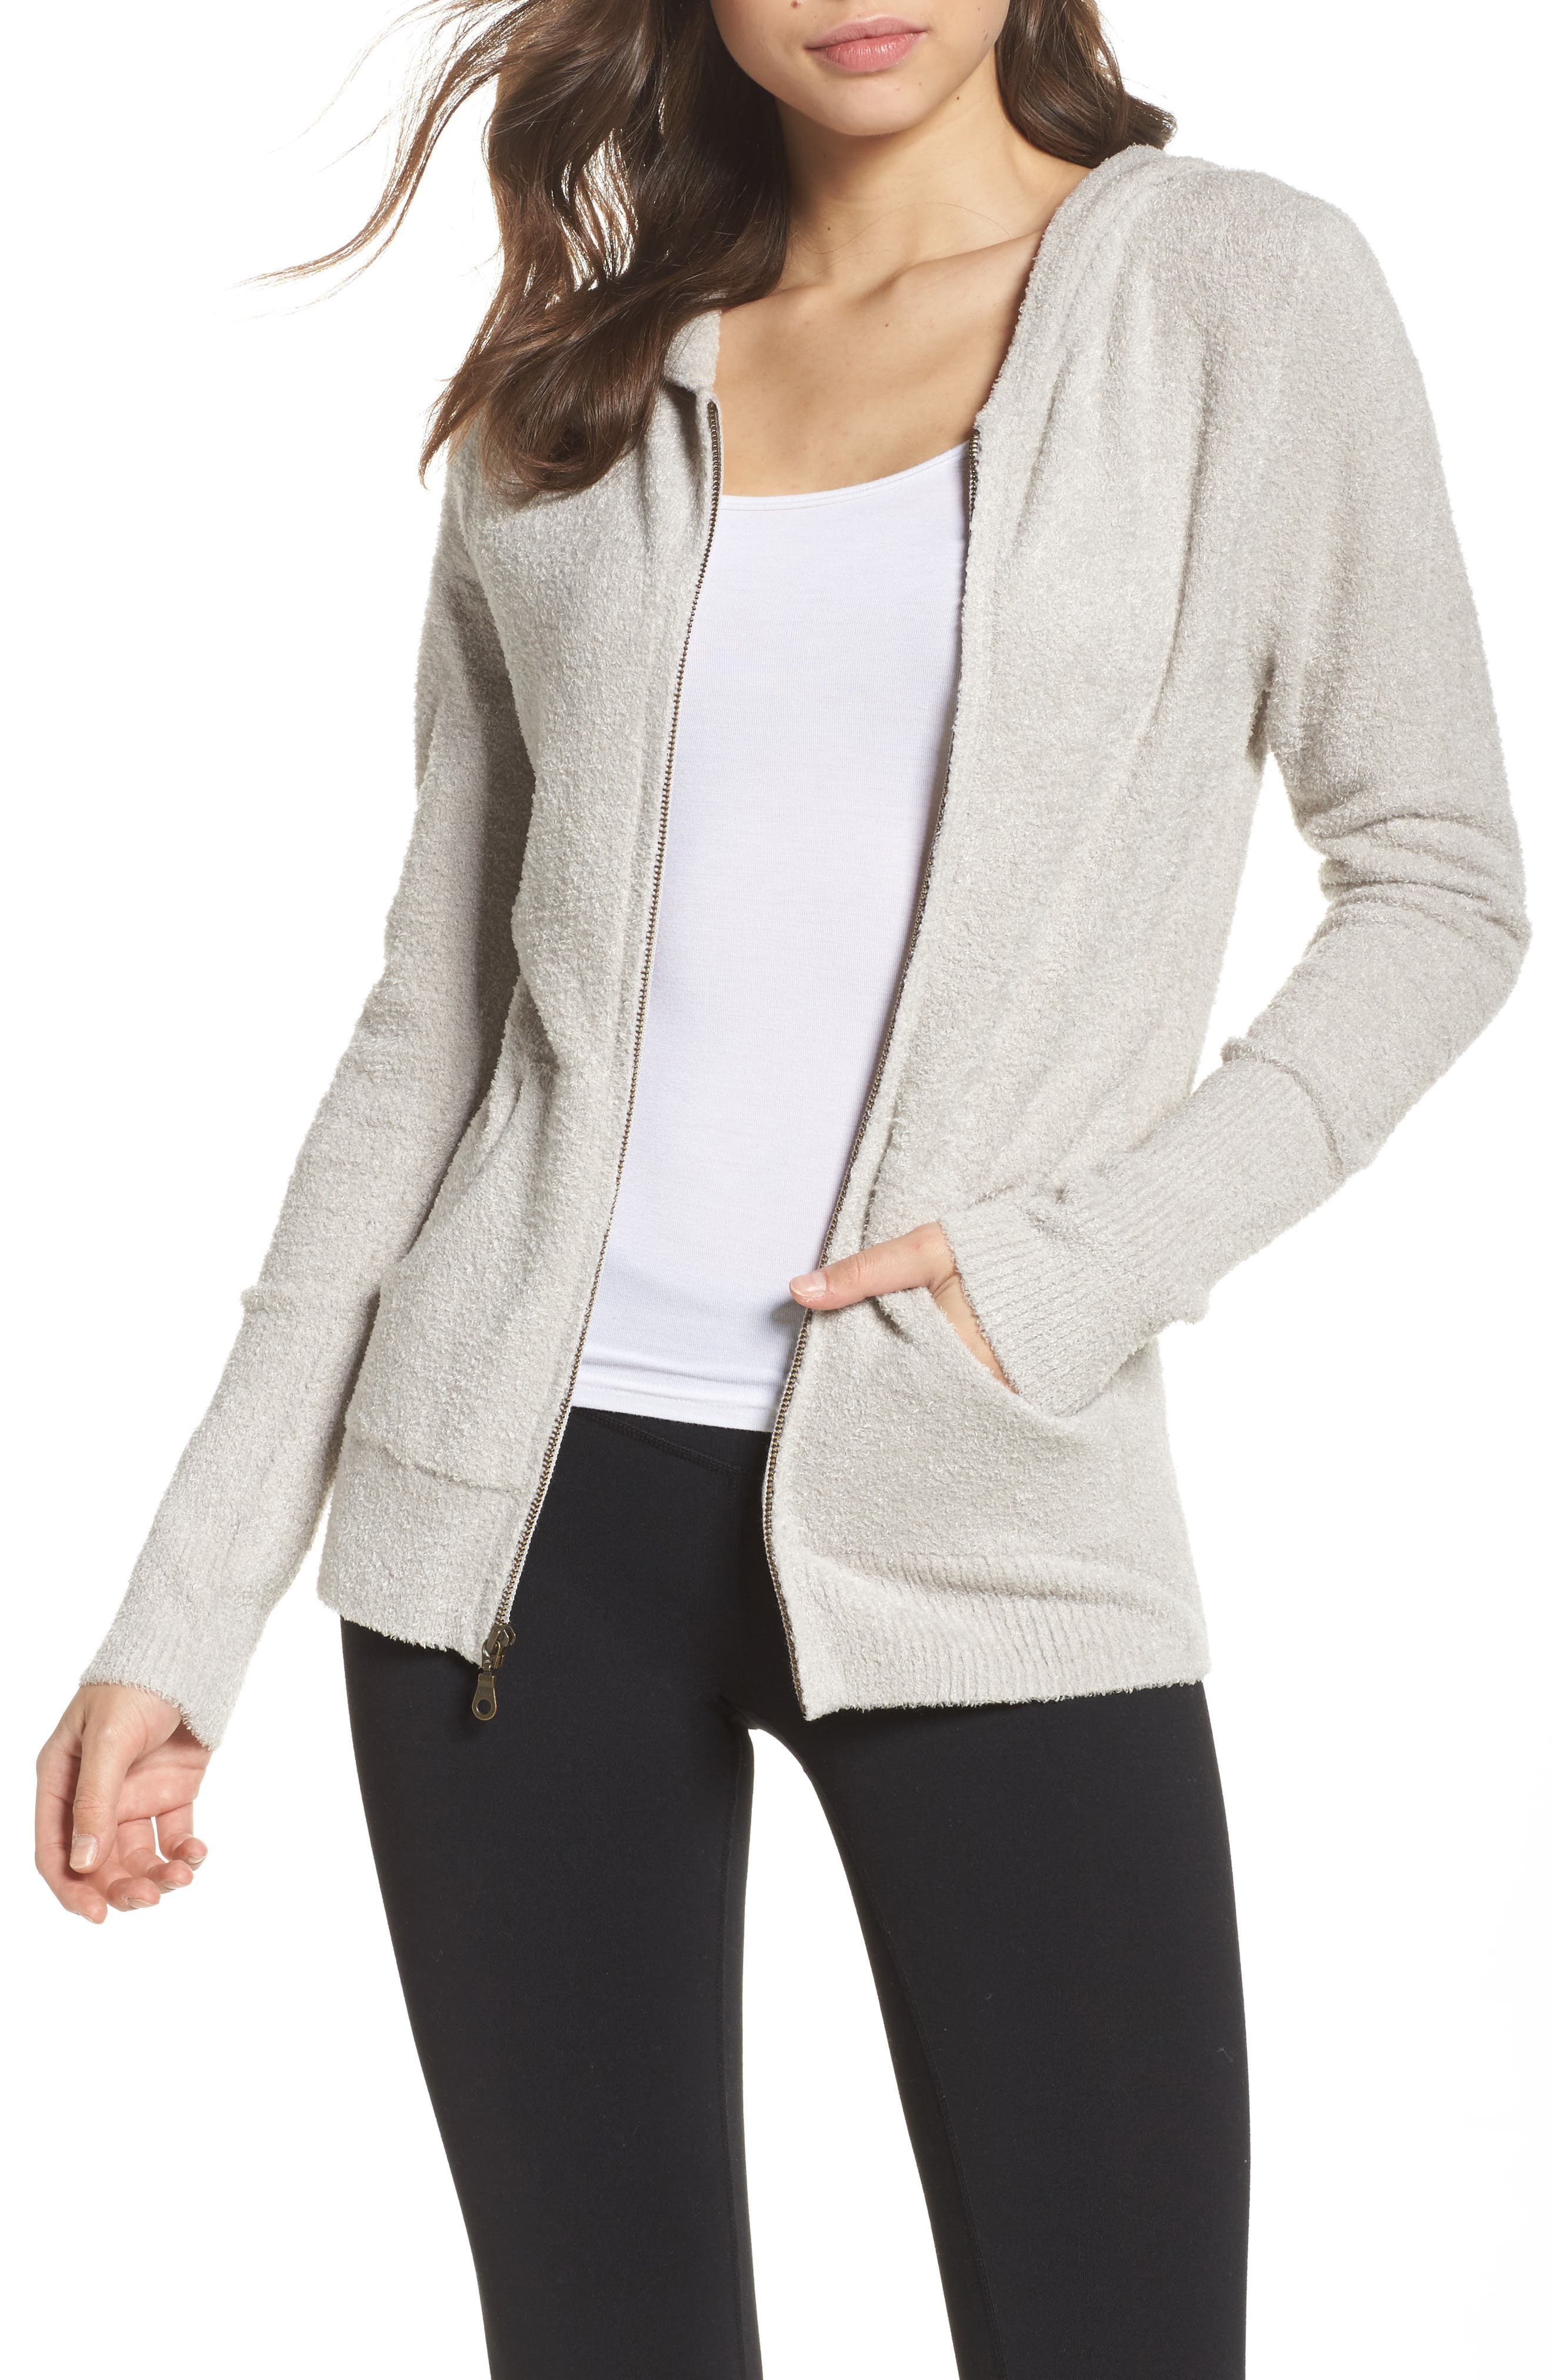 Cozychic Lite<sup>®</sup> Lounge Hoodie,                         Main,                         color, SILVER